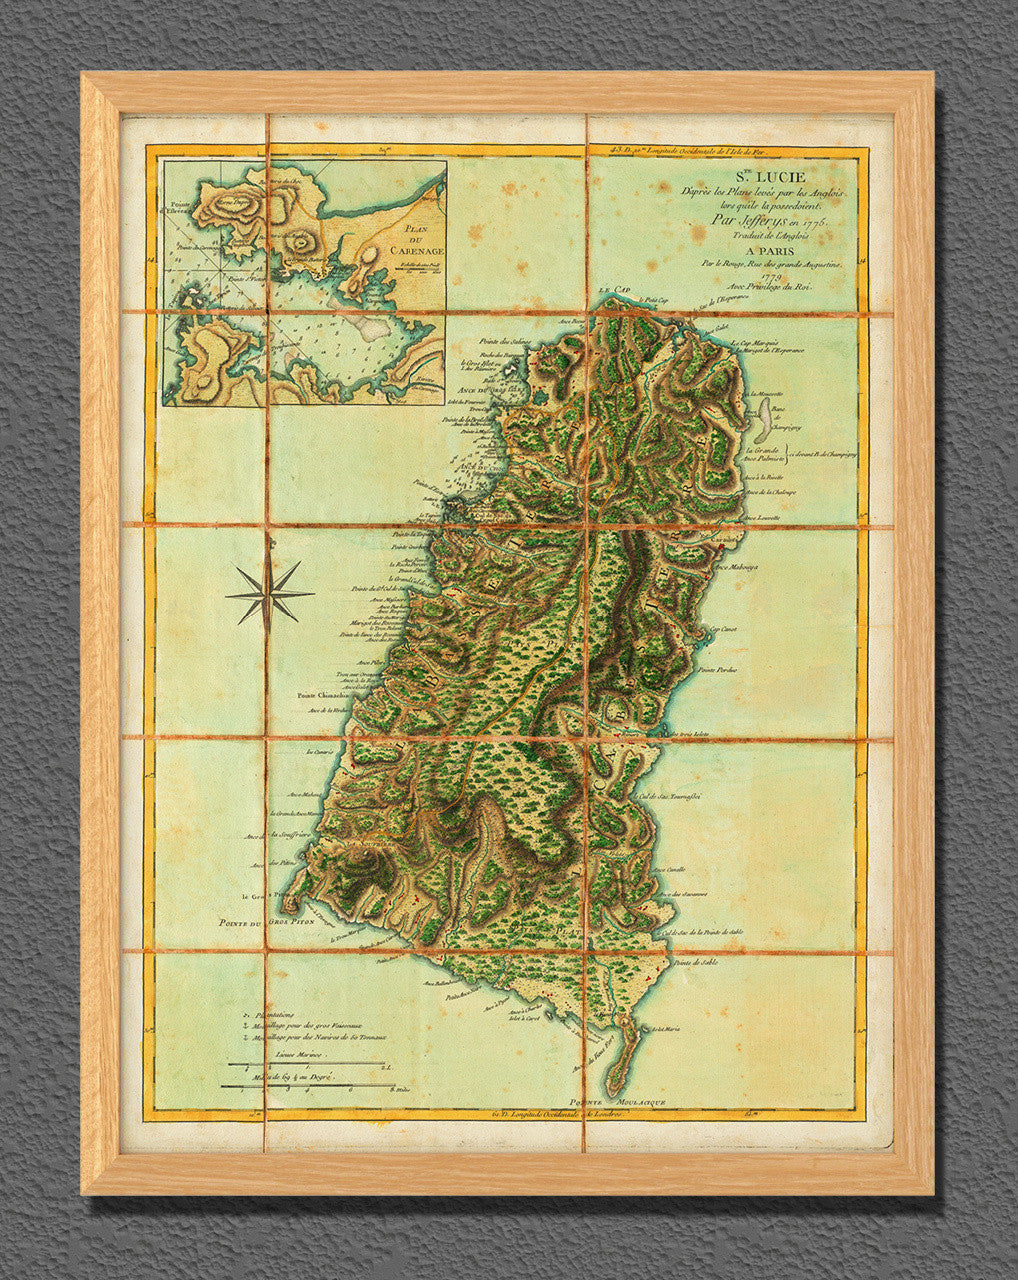 Map of st lucia 1779 sainte lucie le rouge battlemaps caribbean 1779 st lucia ste lucie old map sciox Image collections